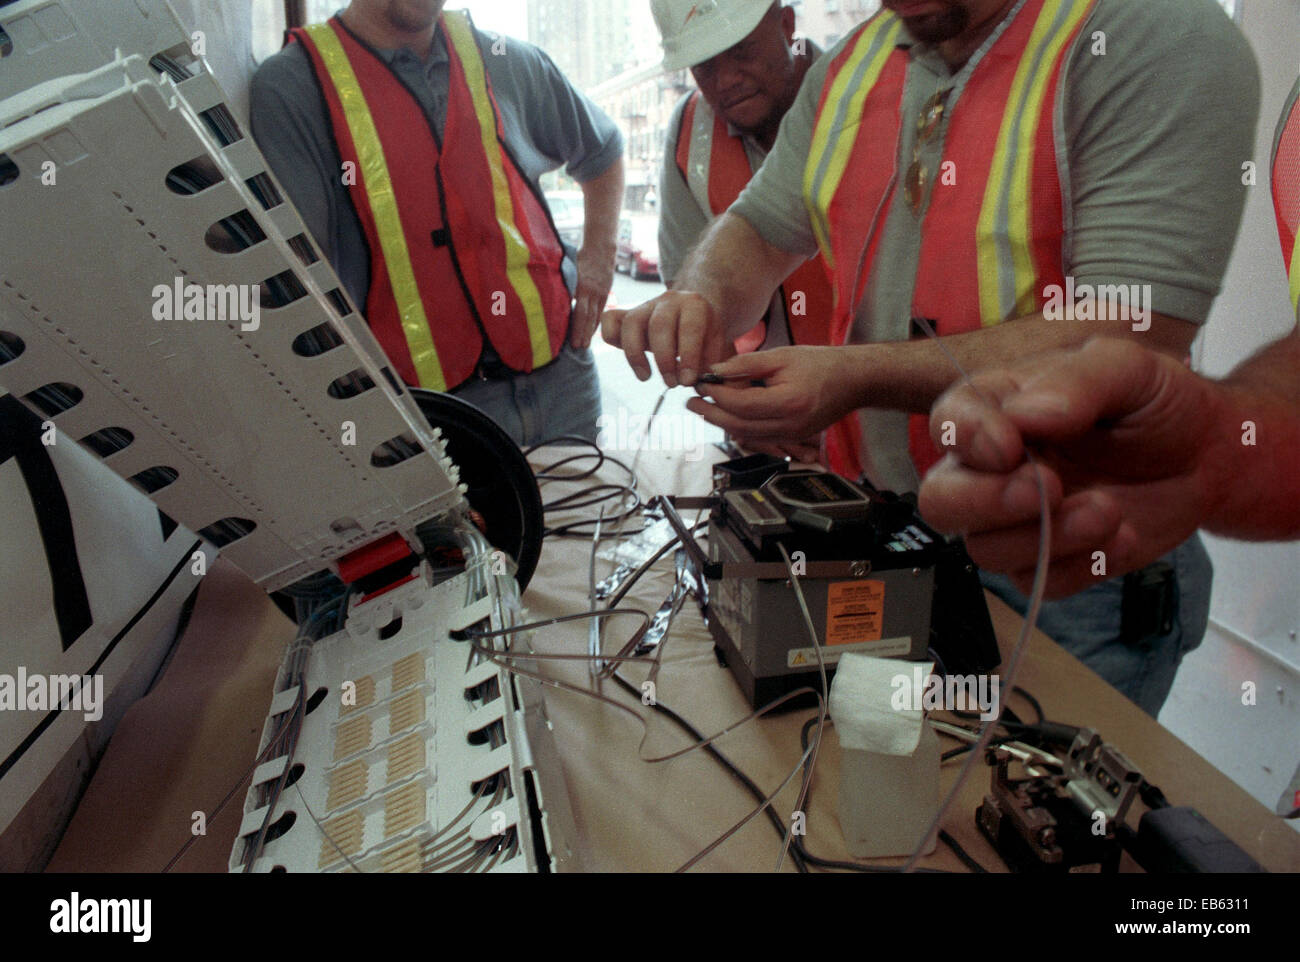 Fiber Optic Cable Splicing : Workers splice fiber optic cables in a mobile